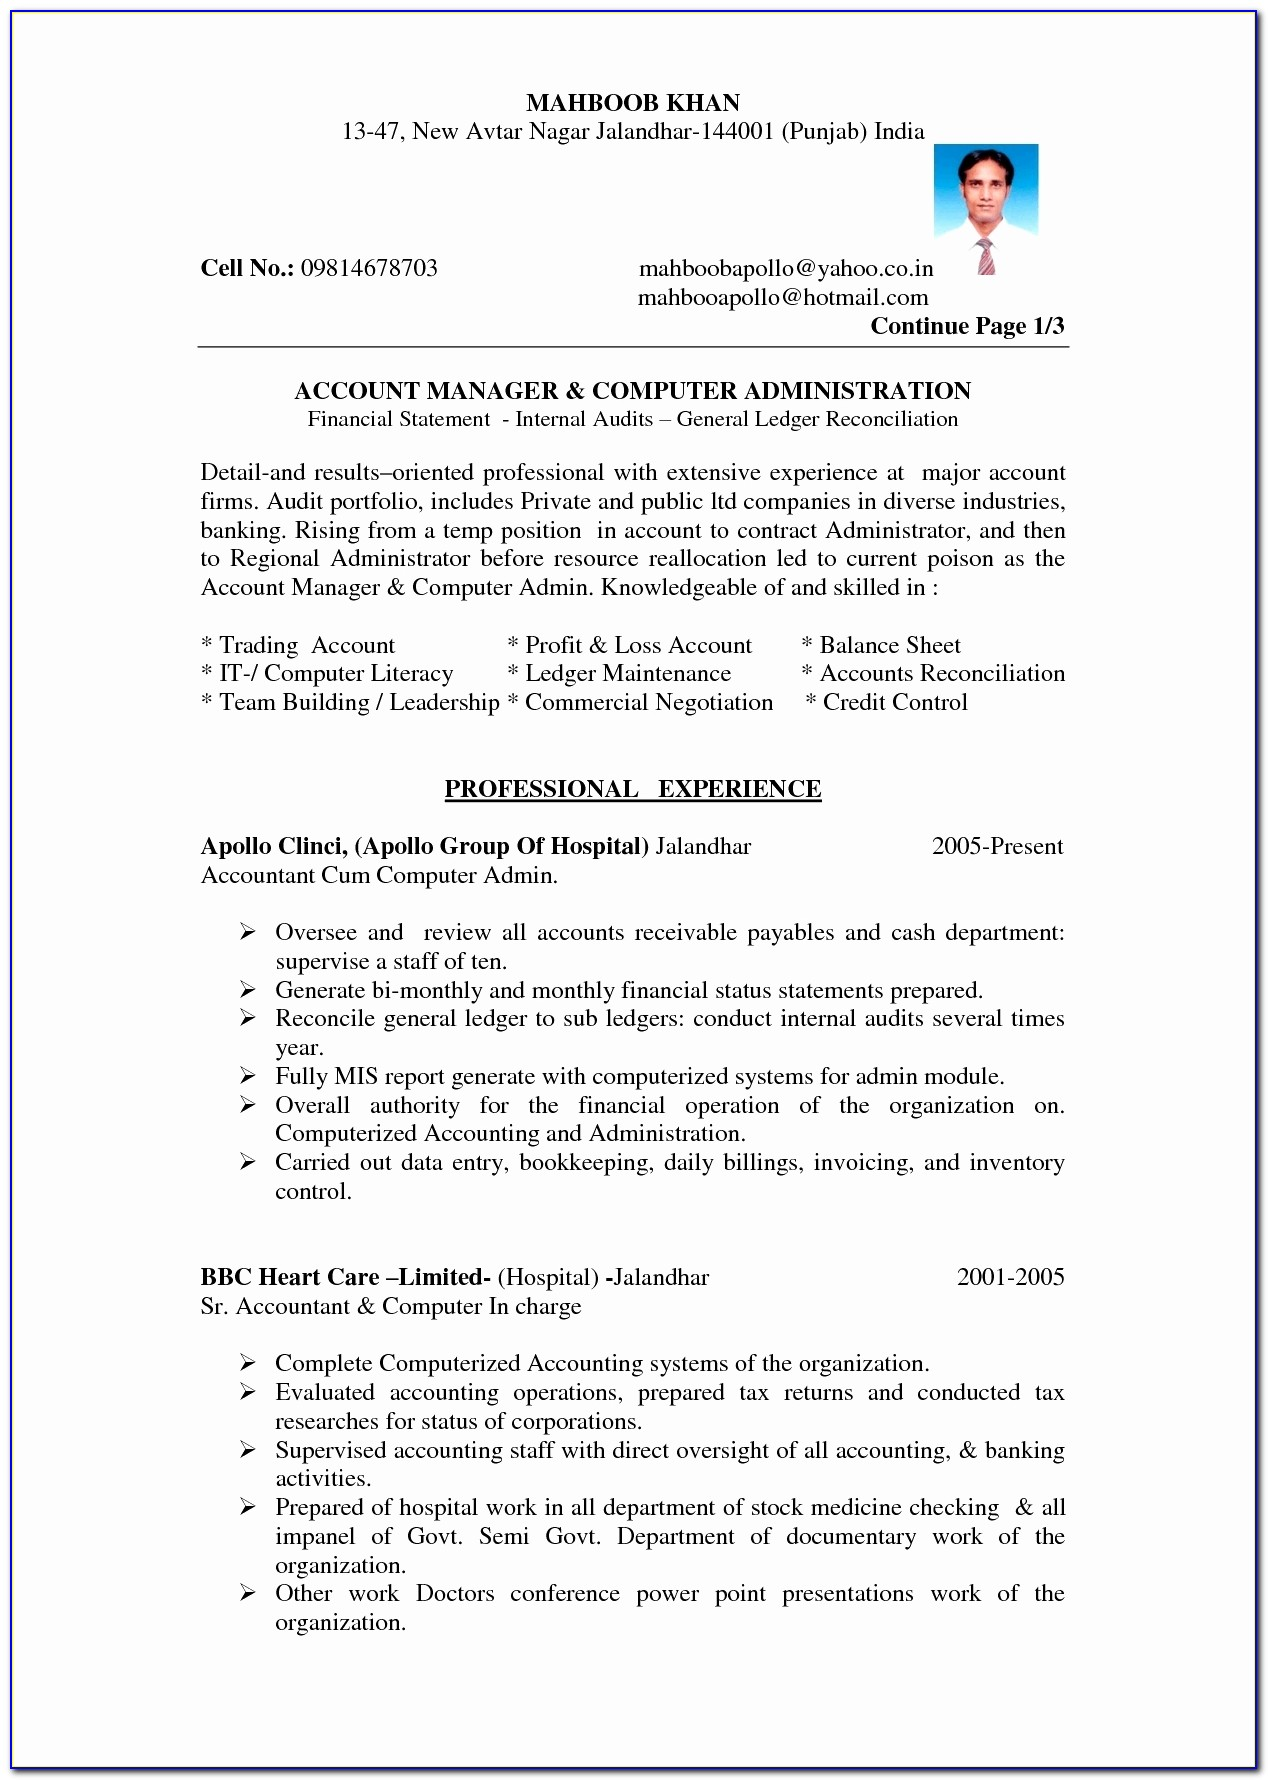 Resume Format For Experienced Staff Nurse Luxury 46 Elegant Resume Format For Experienced Staff Nurse